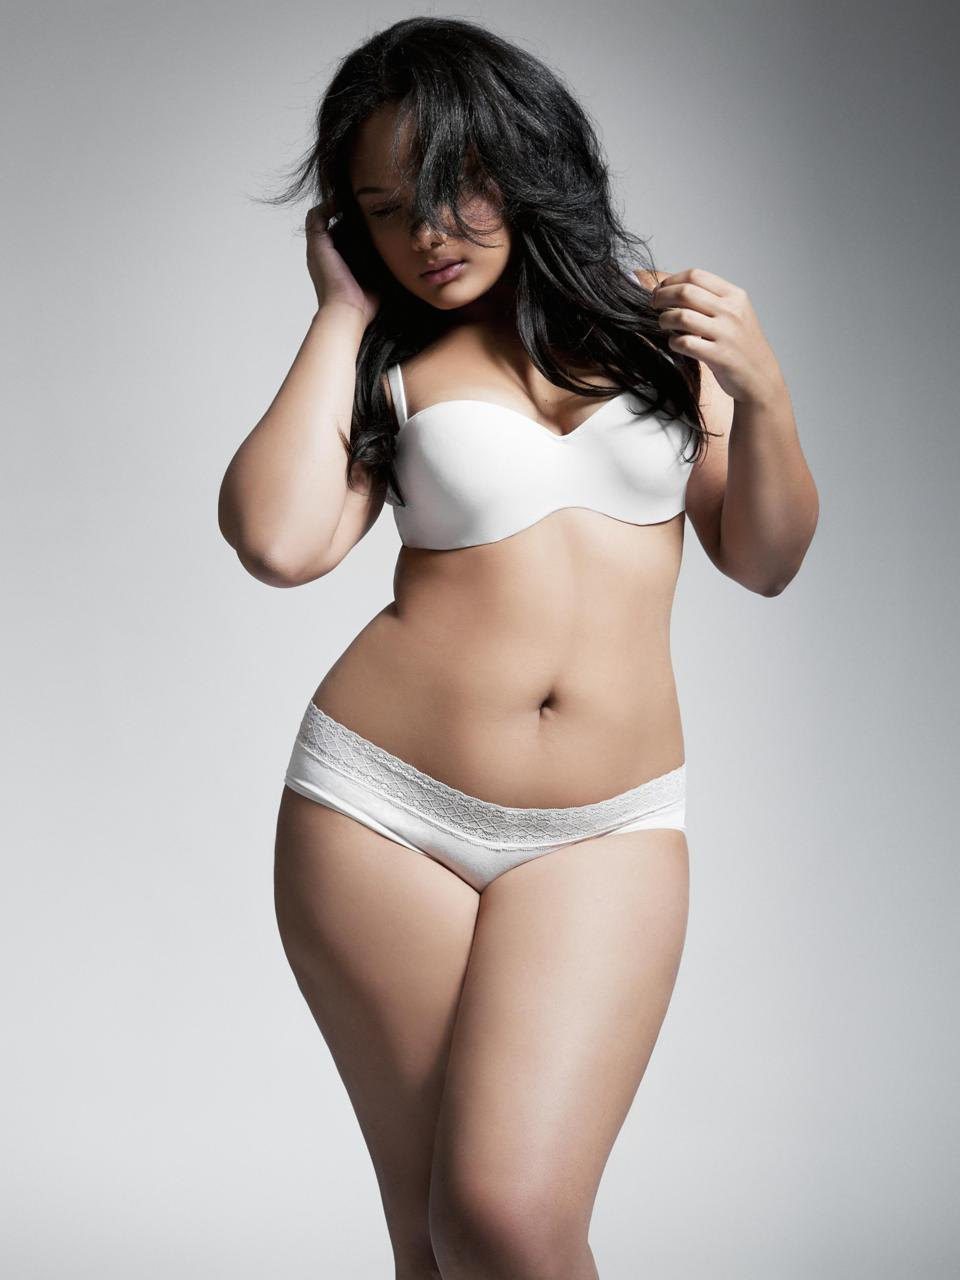 curvy woman tumblr